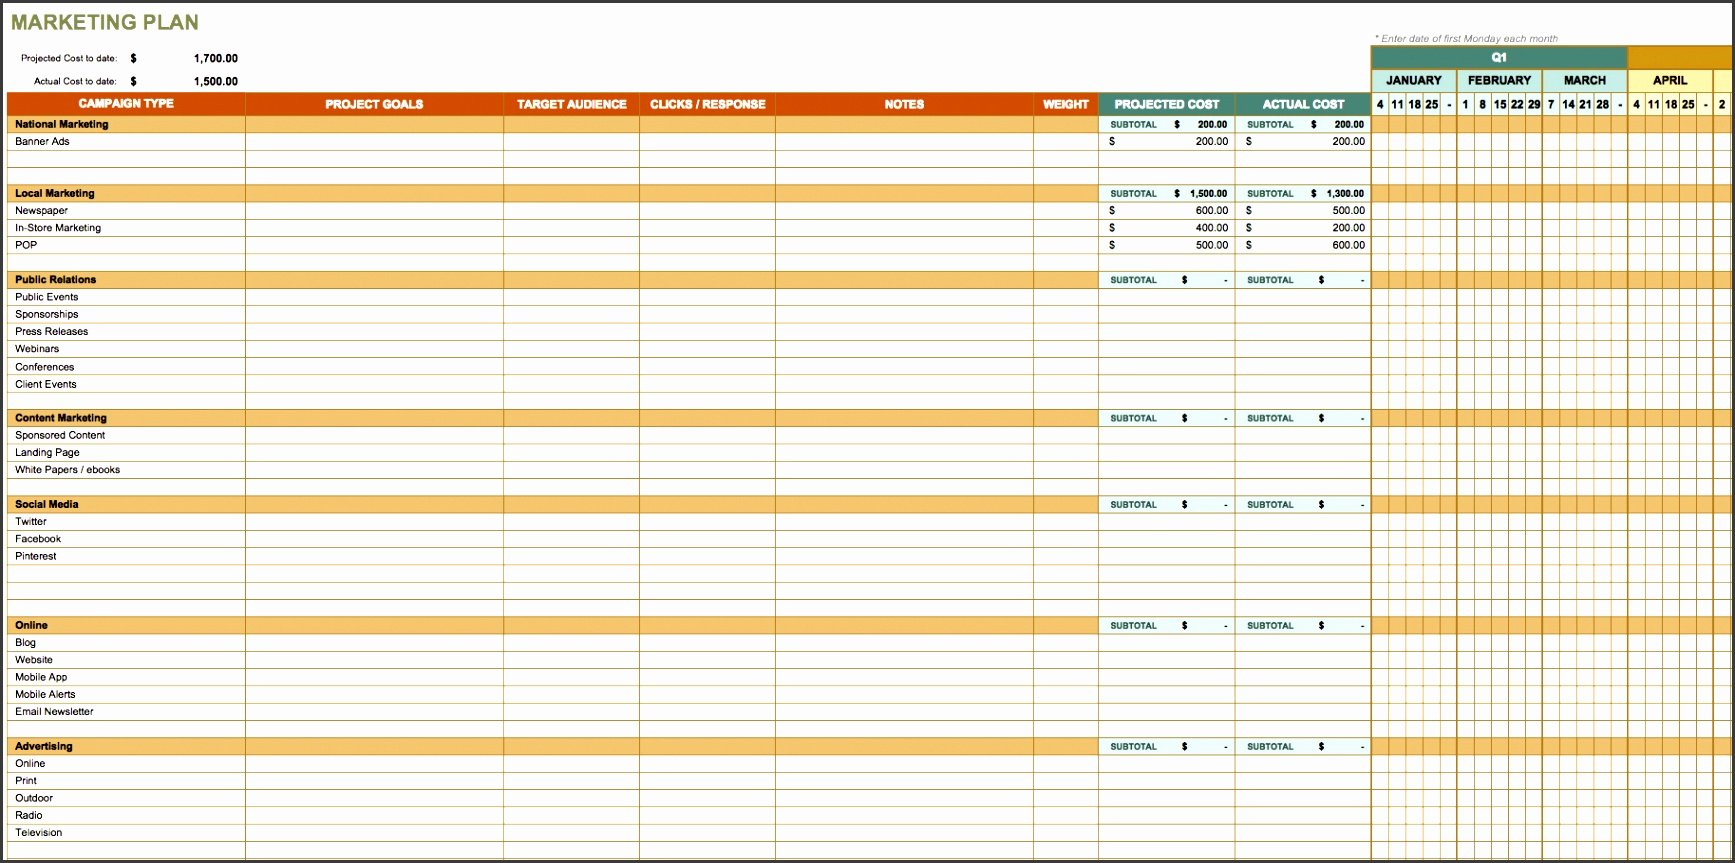 Annual Work Plan Template New 8 Annual Work Plan Template Sampletemplatess Sampletemplatess